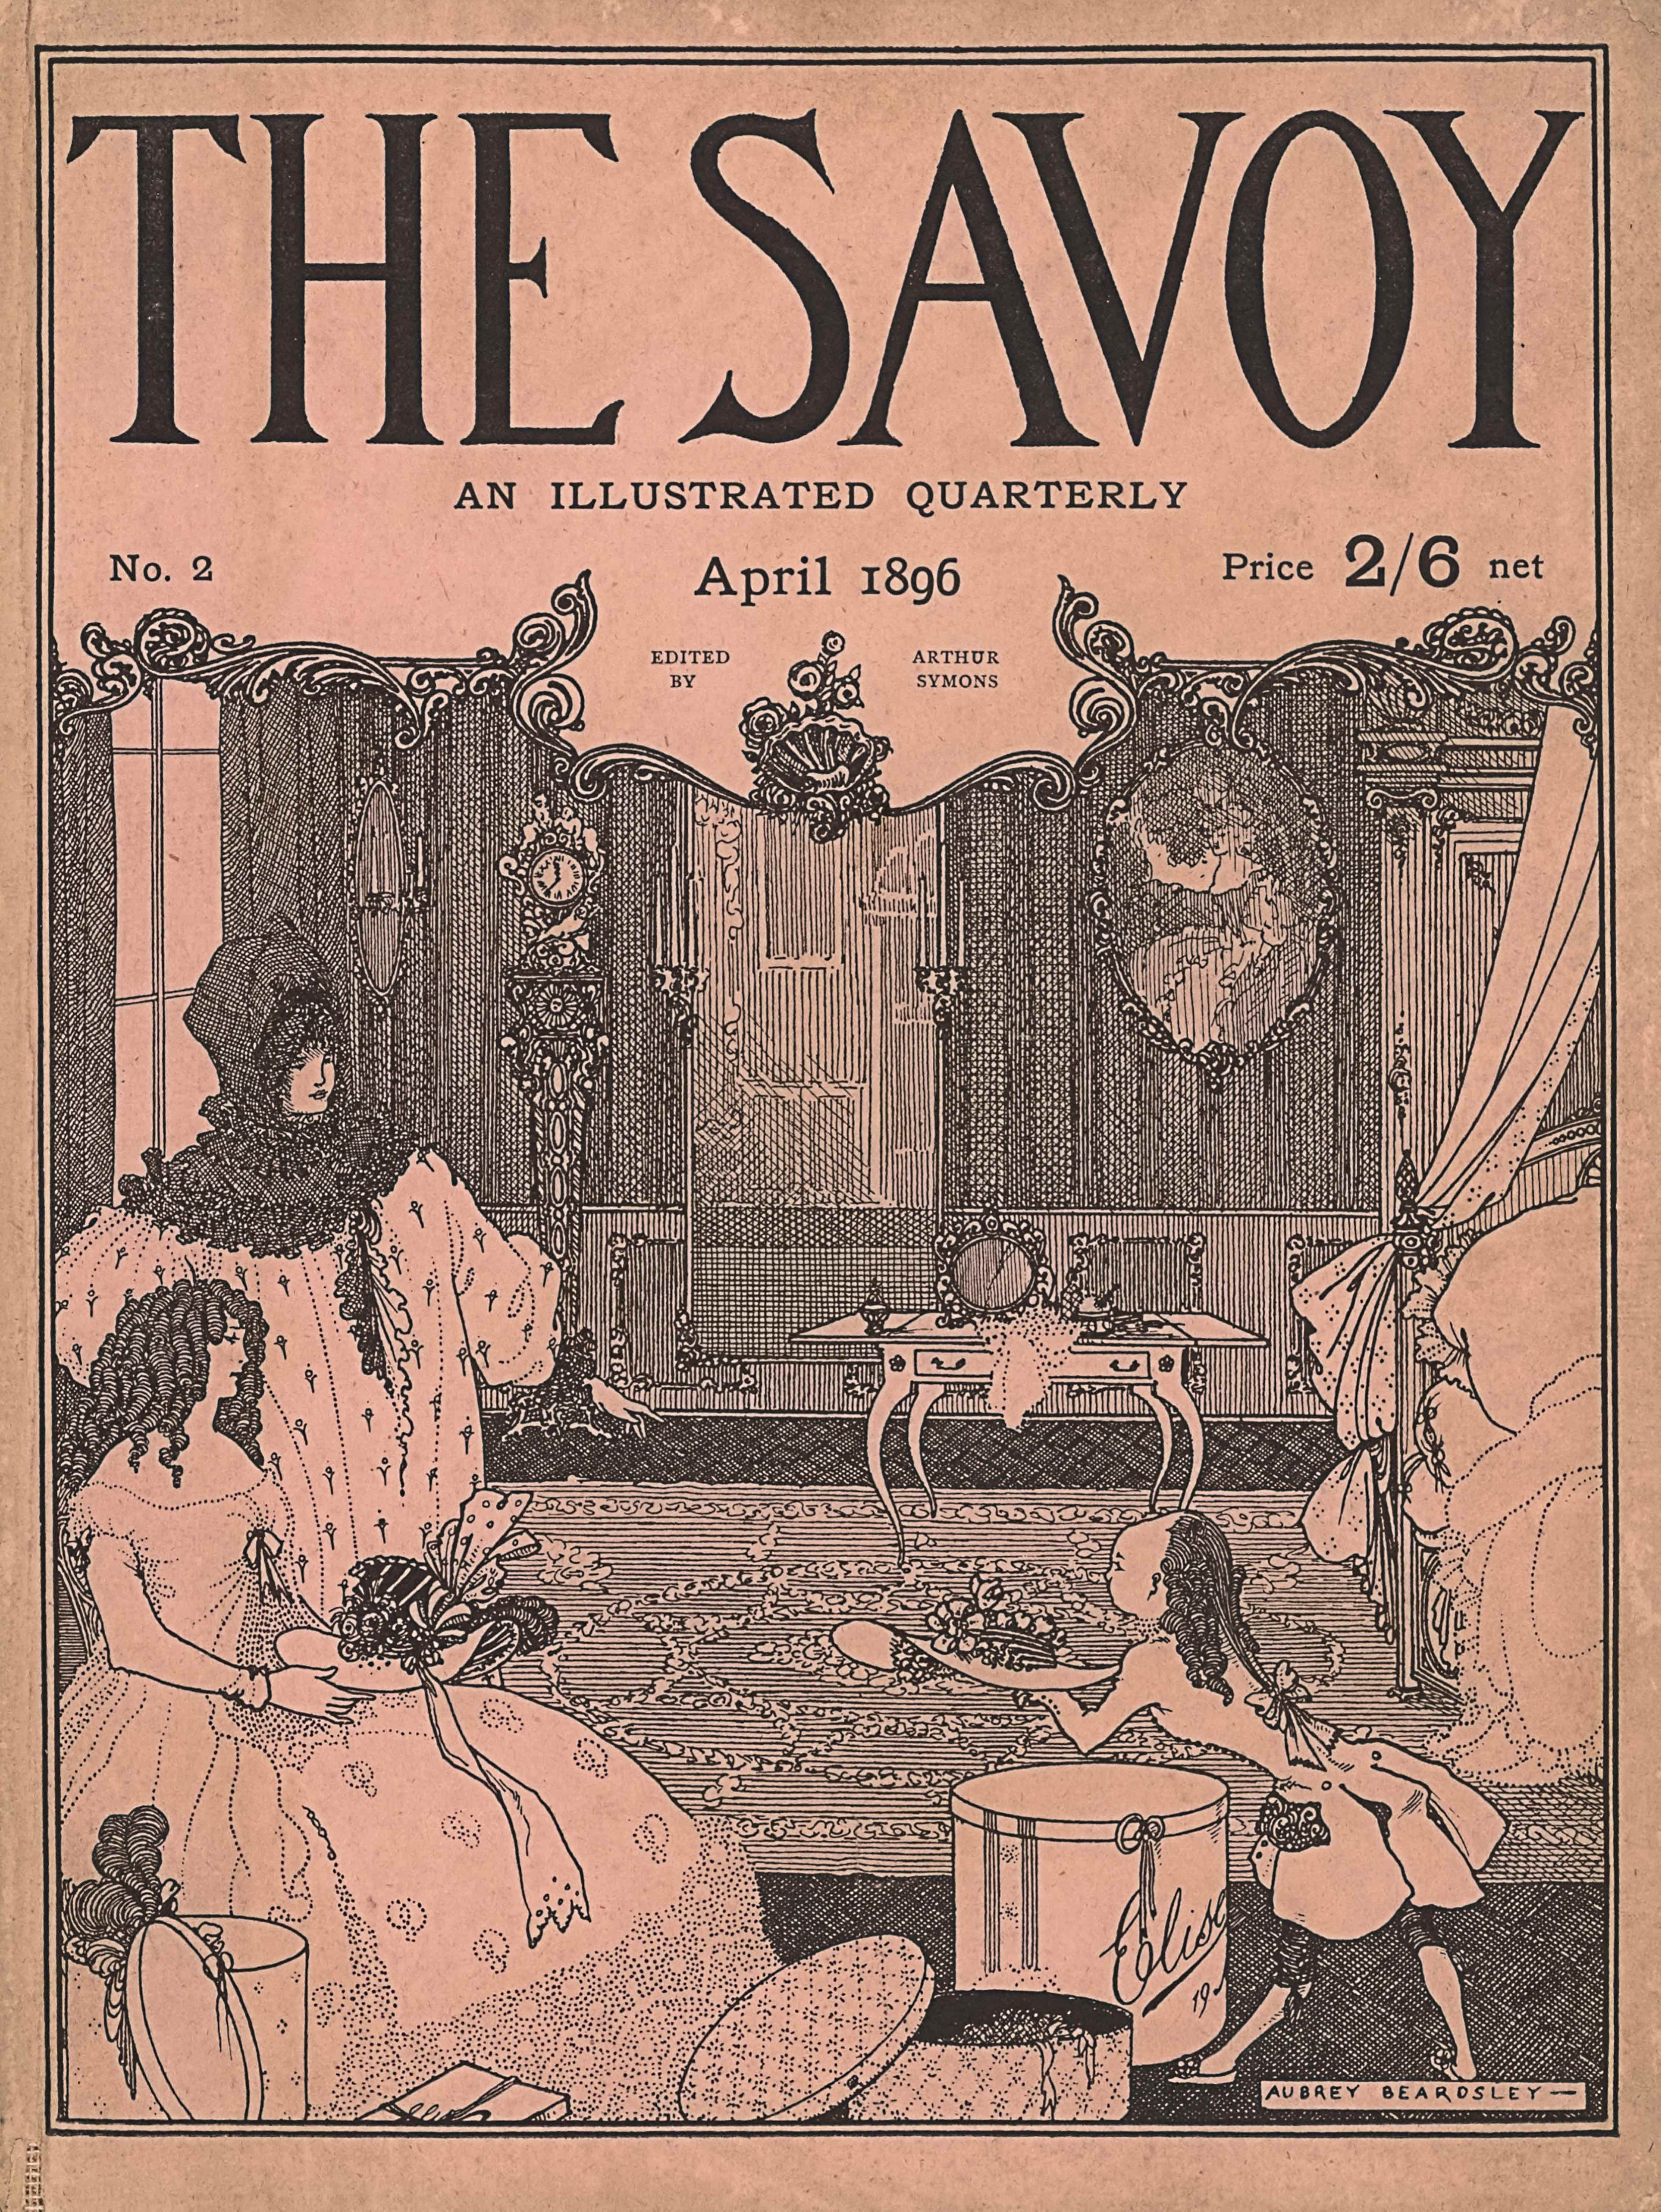 "The cover image, in portrait orientation, combines a line-block reproduction of a pen-and-ink design with letterpress. The title: ""THE SAVOY"" [caps] appears in the top quarter of the page in large font. Underneath the title is the text: ""AN ILLUSTRATED QUARTERLY"" [caps], centered in small font. In the line below ""No. 2"" appears aligned to the left. In the same line the text: ""April 1896"" is centered. Right aligned in the same line is the text: ""Price 2/6 net"". Below this line an ornamented curved, curlicue edge separates the publishing information from the image below. The ornamented edge dips down slightly lower in the centre with a scallop shell ornamented with floral buds sticking up in the middle. On either side of the scallop is text. On the left in two lines it reads: ""EDITED BY"" [caps] and on the other side of the scallop in two lines appears: ""ARTHUR SYMONS"" [caps]. The image below the text block is of two women in a bedroom selecting a hat to wear with a small page aiding them. In the foreground and the bottom left of the page is an open hat box with a plume of feathers sticking out the top and hanging over the left side. The lid of the hat box leans against the front. To the right is a square box lid partially visible in the foreground. To the right of that and centrally in the foreground is a shorter and wider hat box opened with the lid leaning on the top edge and the floor and revealing the top edge of a hat with ribbons hanging out over the edge. Slightly behind the central hat box is a larger hat box closed and with the text: ""Elise"" scrawled across the front and around the right side. The box also has a bow on the front edge. The page leans forward over top of the ""Elise"" hat box, in profile facing the women at the left of the page. The page is holding a large brimmed hat with floral decorations around the crown and offering it to the women. The page wears a double vent tailcoat reaching down to the knee. The coat features a bow on the lower back. The page has a bald area on the top of the head and coiled hair that starts at the back of the scalp and hangs down below the shoulders. The page's face is visible in profile. On the left, behind the hat box, a woman sits on a chair facing to the right of the page. Her face is visible in profile. She wears a long gown that has a wide, off-the-shoulder neckline. The dress has a swirl dotted pattern embroidered into it. There is heavy swirling at the bottom of the skirt. A bow is tied in the centre of her bust. She has long, dark, and coiled hair. Her arms are bent and holding a ornamented hat on her lap. The hat is large brimmed and has a striped pattern on the crown only. There are bows and twirls of ribbon around the band. One long end of a ribbon hangs down her lap. Behind the seated woman is a standing woman, also facing to the right side of the page. Her face is in three-quarters profile. She has on a large nightgown with a small floral pattern and vertical dotted lines. She also has on a large bonnet, which covers her hair and neck. The bonnet has ruffled edges and like a scarf has a piece that hangs down her front. She has her right hand on her hip and her left hand extended out and pointed down. The floor of the room is a diamond pattern parquet with a large floral garland patterned rug over top. Behind the women on the left is a large paned window with drapes. An oval mirror is hung on the wall just past the window towards the back wall. The mirror has a candle holder extending out from either side. On the back wall to the right of the mirror is a tall and ornamented grandfather clock. The wall has vertical striped dark wallpaper with square panelling in the bottom quarter. In the middle of the back wall is a floor-length mirror, again with candle holders and two candles on each side mid-way up. In the mid-ground and slightly to the right is a dressing room table topped with a small mirror, perfume bottle, piece of clothing, and small brushes. The table has rounded legs convexing outwards and one drawer in the front. Behind the table on the wall is a portrait of a woman in an oval frame, dressed in a gown and a plumed hat. To the right of the frame, and from the mid-ground to the back wall, sits a bed only one-quarter in the frame, showing an ornamented headboard and footboard with a bench in front piled high with pillows and blankets. The bed seems to have an upper frame with bed curtains, pulled off to the side. In the bottom right corner of the page the artist's name, printed within a white box ""AUBREY BEARDSLEY –"" [caps]."